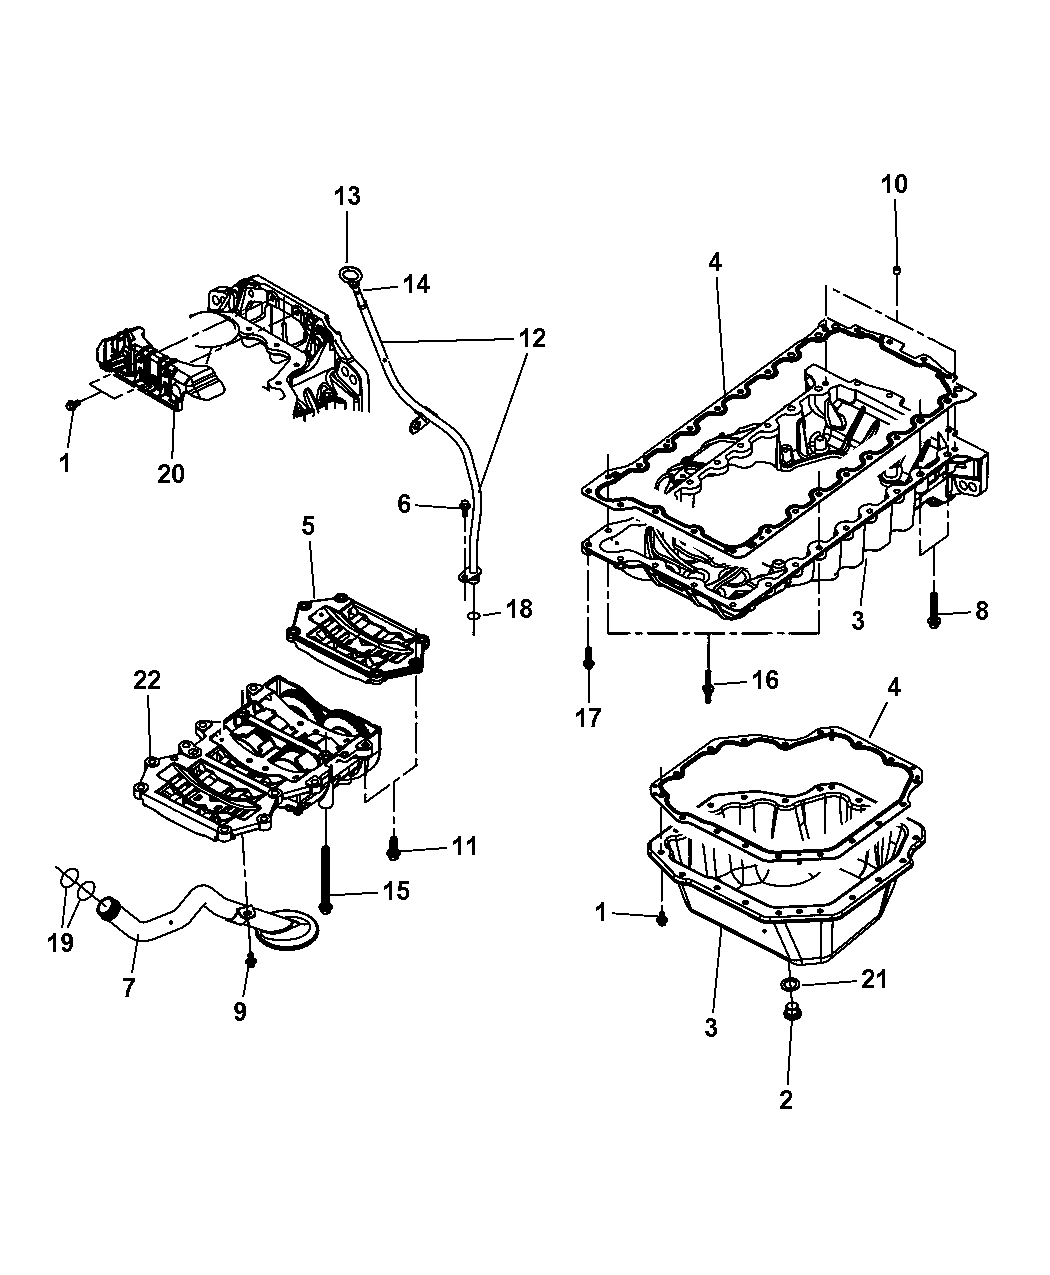 2009 Jeep Wrangler Engine Oil Pan & Engine Oil Level Indicator & Related  Parts - Thumbnail